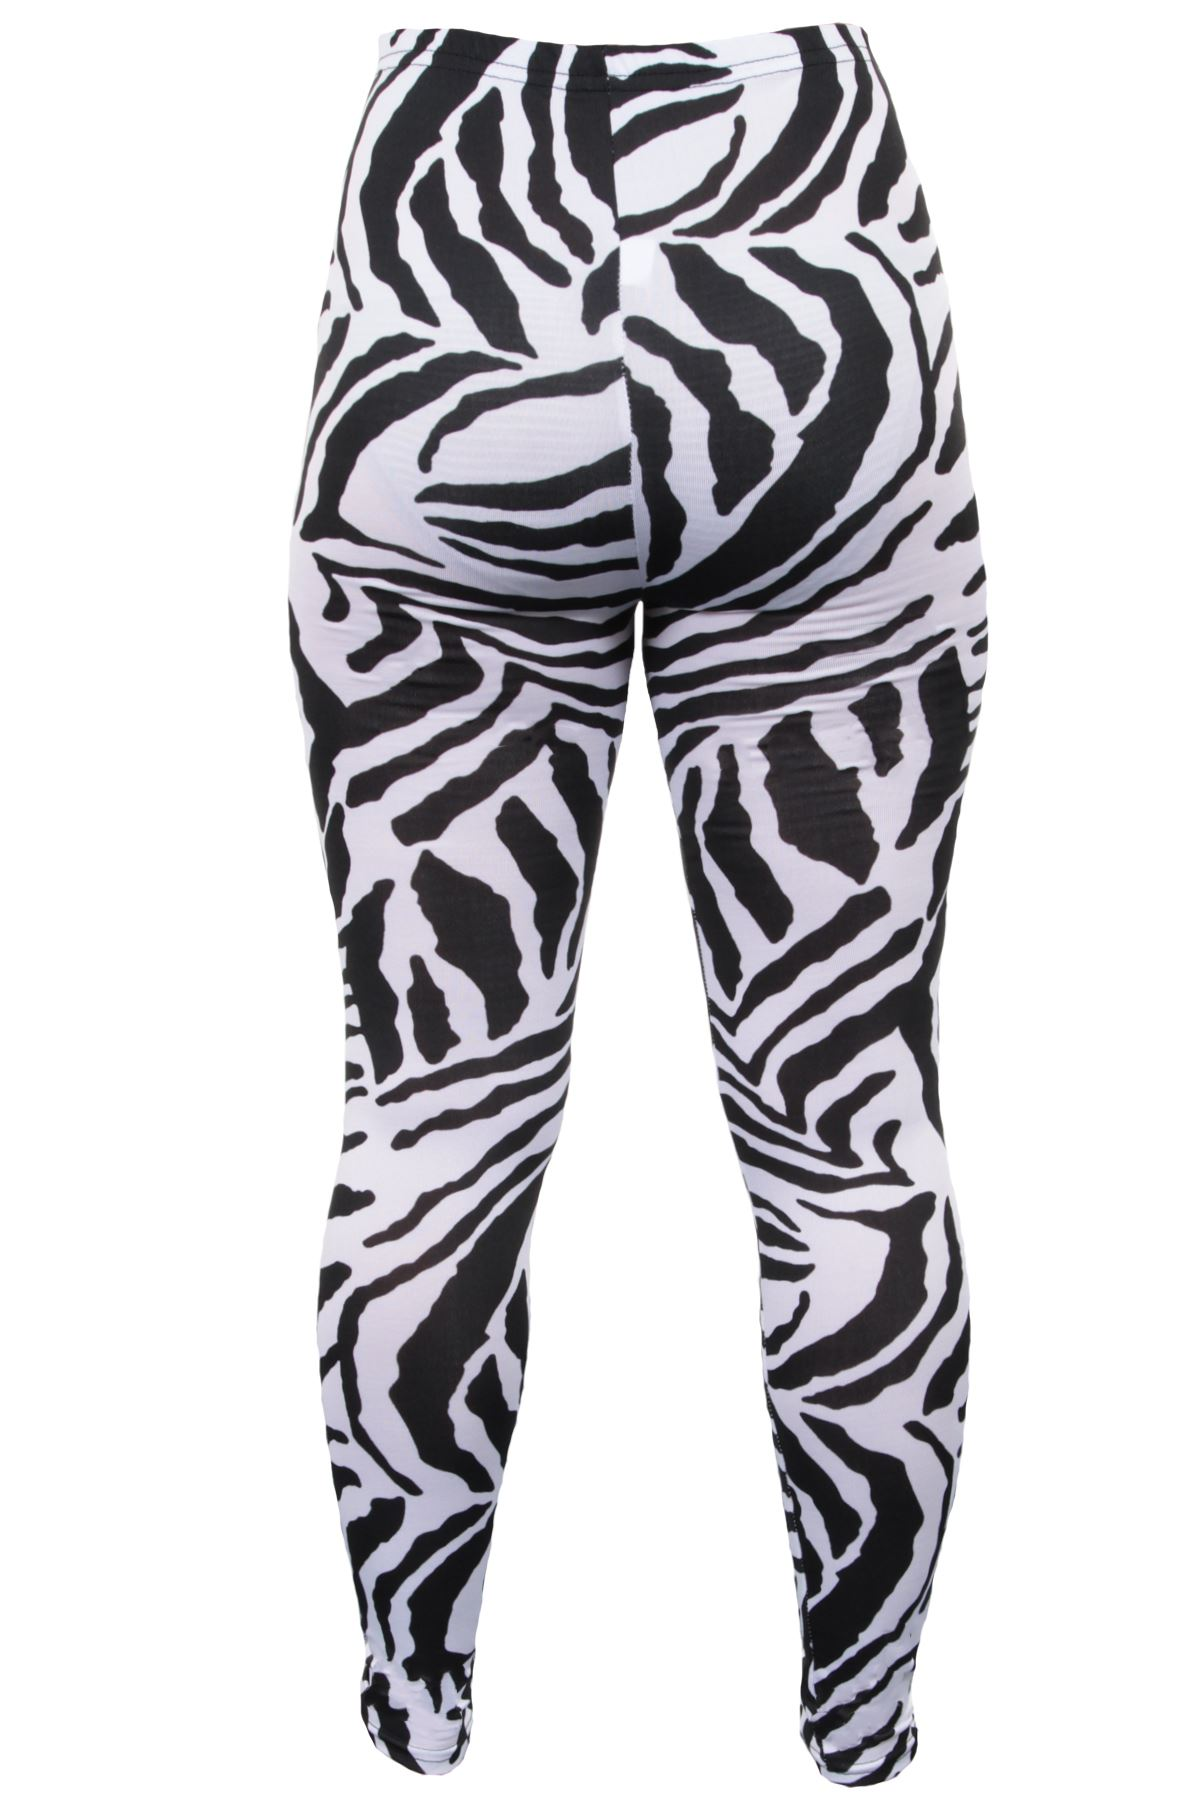 Toddler Girl Zebra Print Leggings. Welcome to our reviews of the Toddler Girl Zebra Print Leggings (also known as 7th grade math worksheets word problems).Check out our top 10 list below and follow our links to read our full in-depth review of each online dating site, alongside which you'll find costs and features lists, user reviews and videos to help you make the right choice.